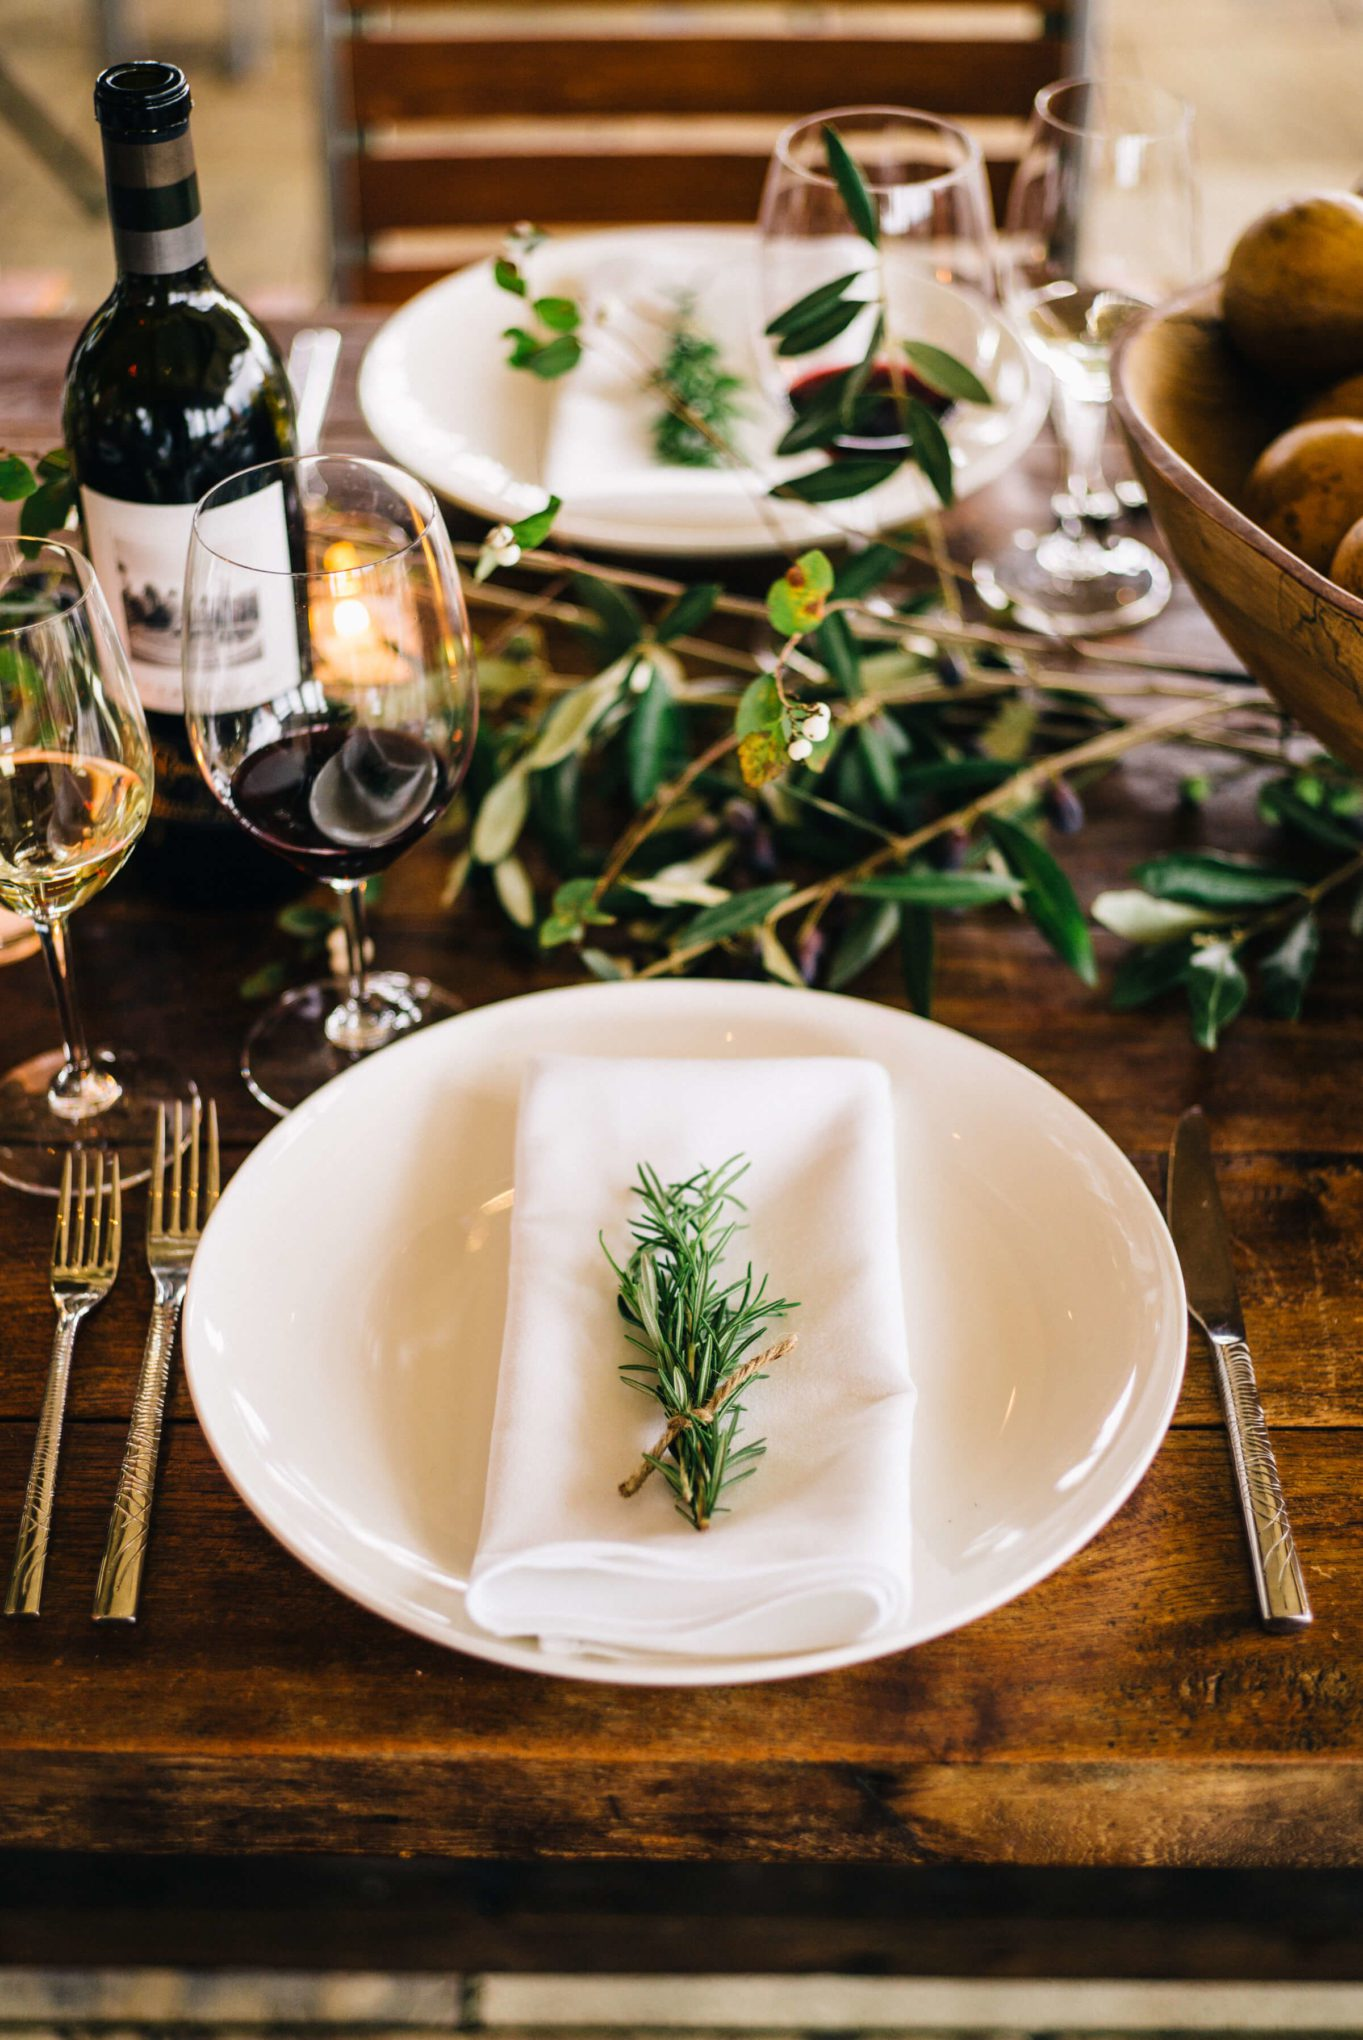 Round Pond Estate Winery in Napa Table for Thanksgiving created by the taste sf